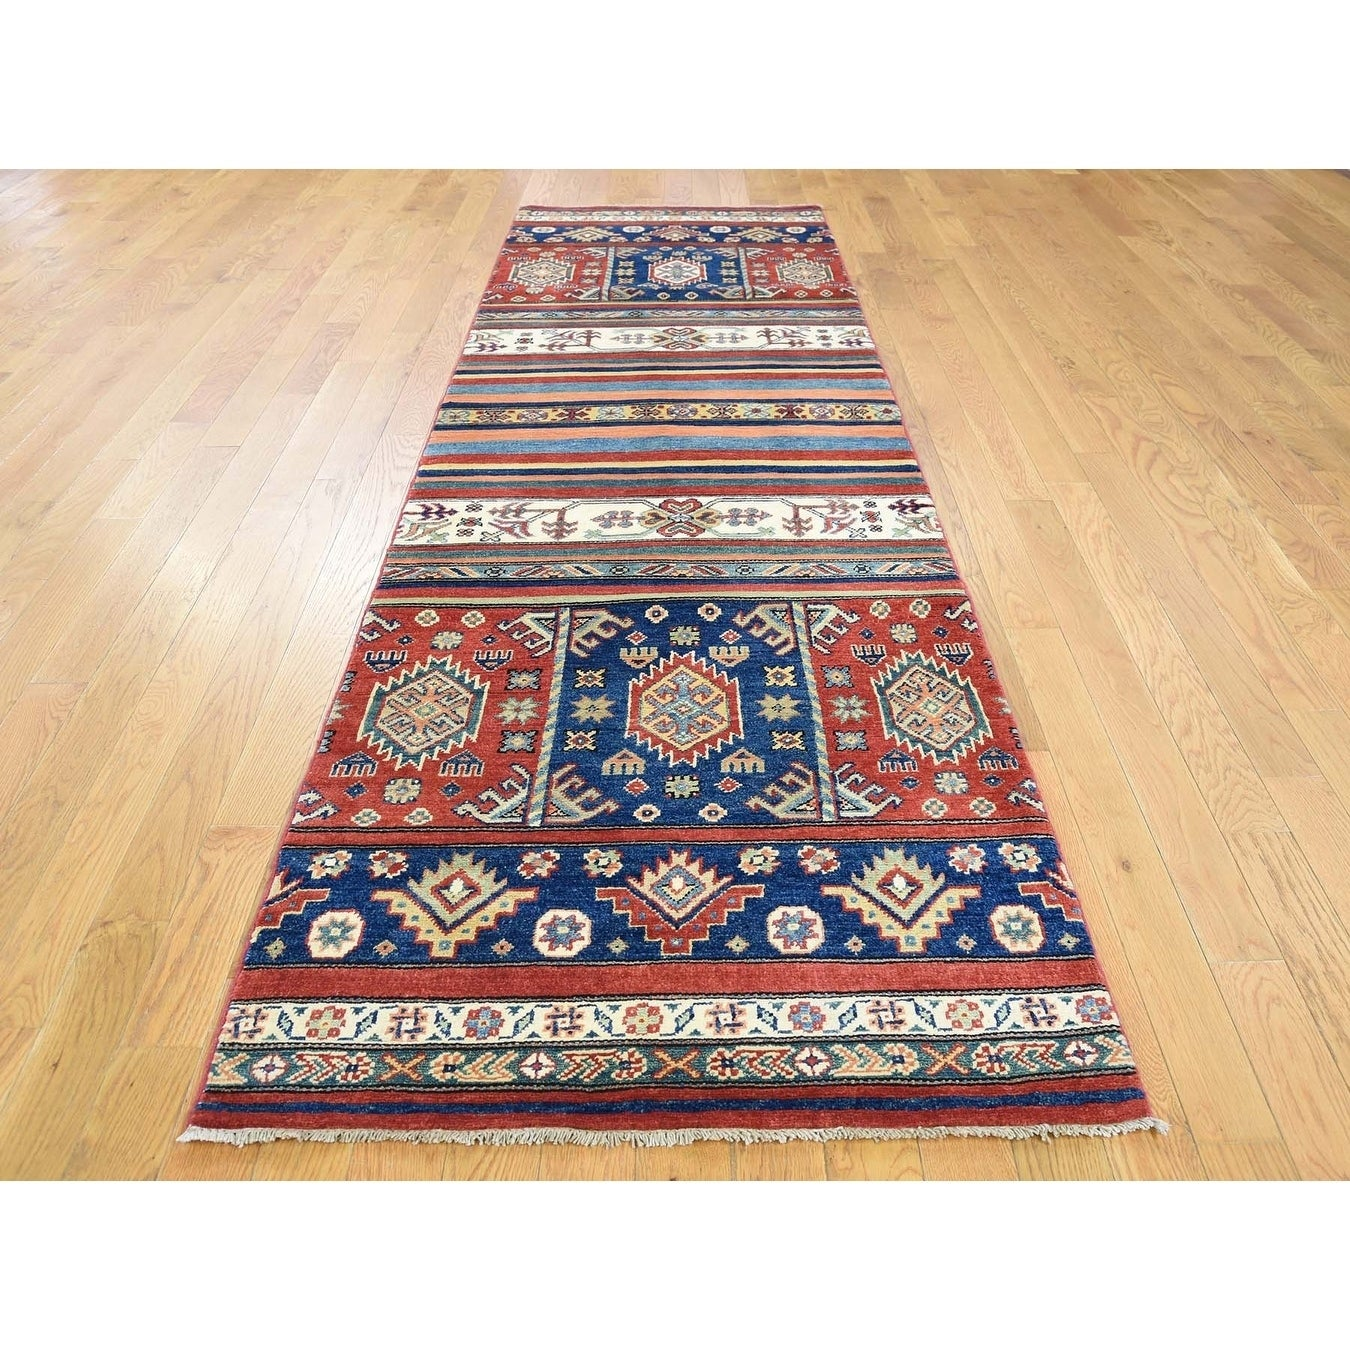 Hand Knotted Multicolored Kazak with Wool Oriental Rug - 210 x 95